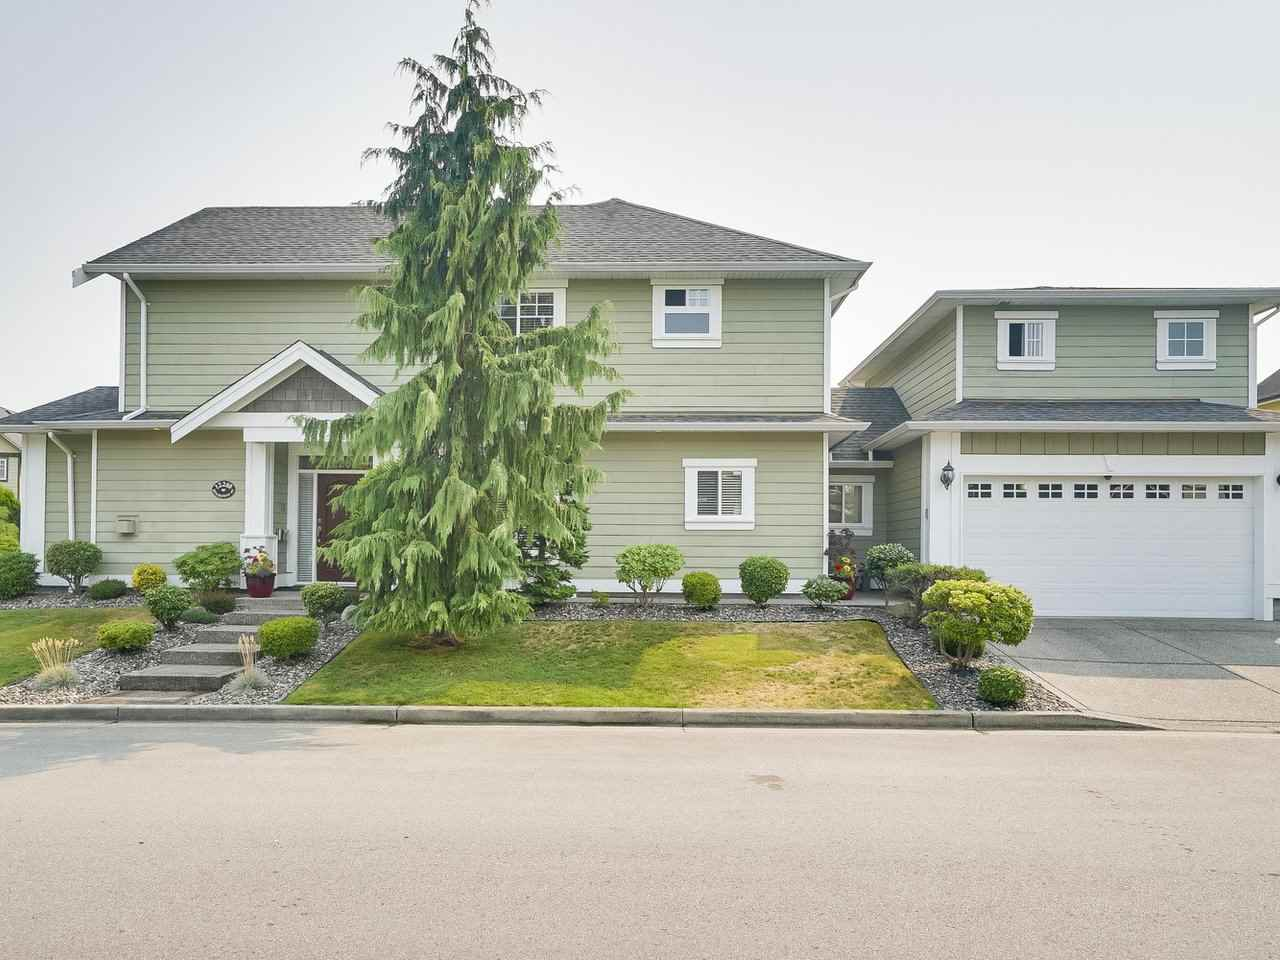 Main Photo: 12288 BUCHANAN Street in Richmond: Steveston South House for sale : MLS® # R2195834